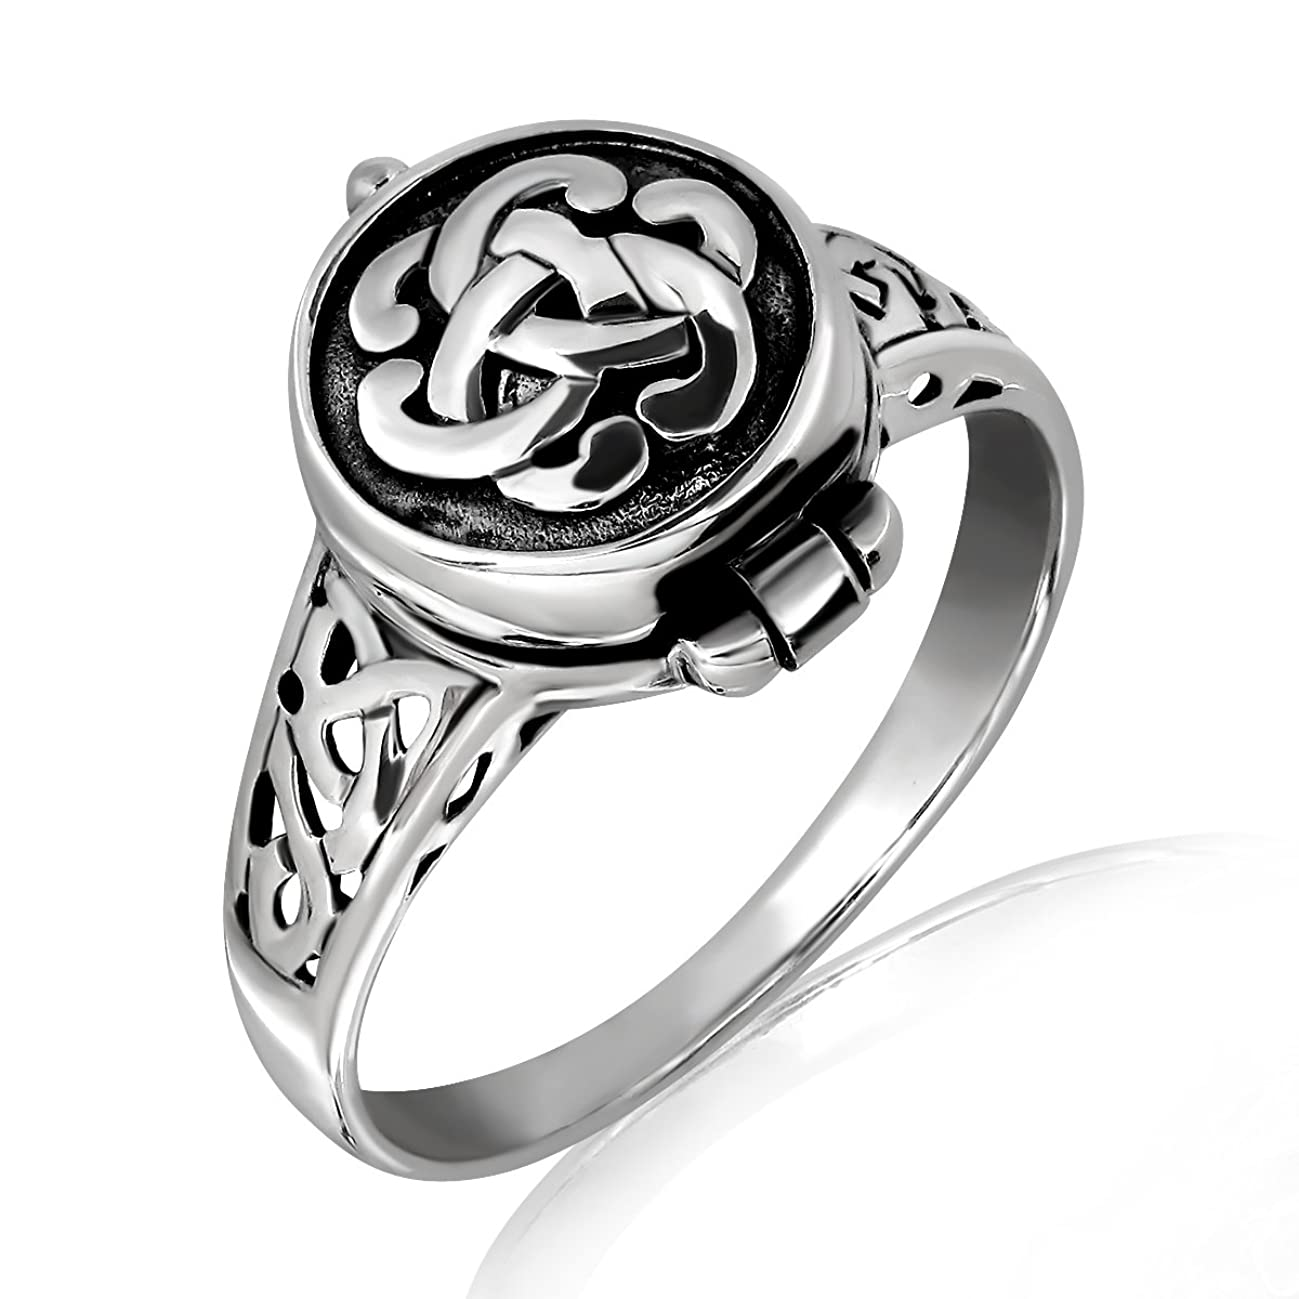 WithLoveSilver 925 Sterling Silver Round Irish Celtic Knot Poison Locket Ring